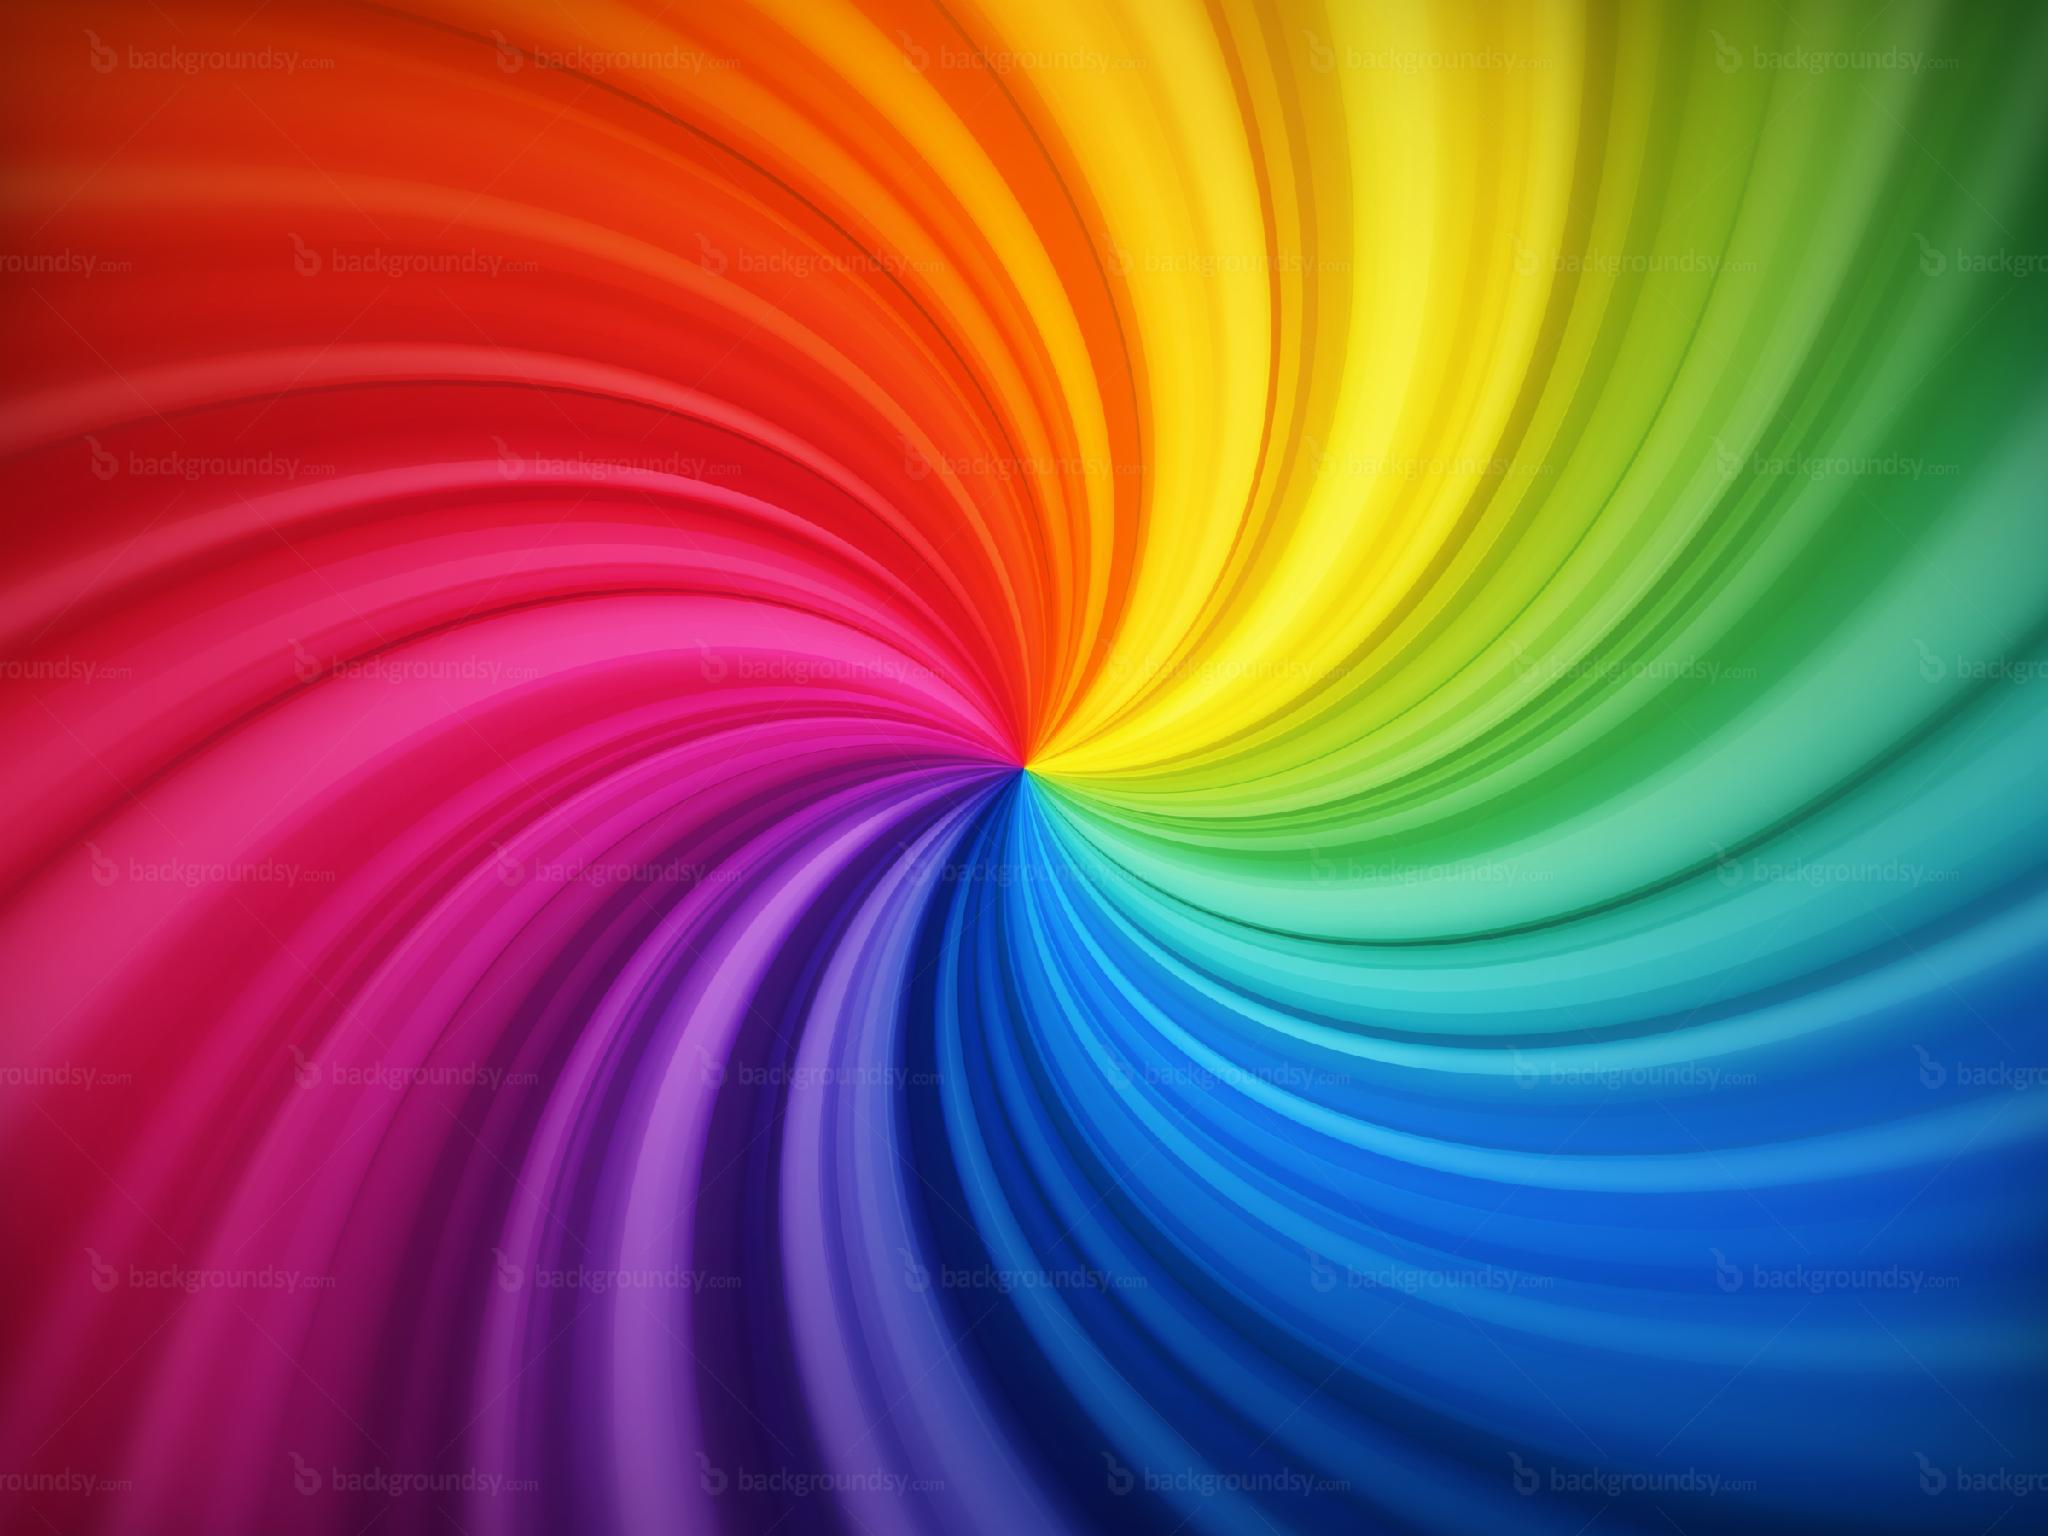 Hi! Welcome to my quiz! The first question is simple and common, what is your favorite color in the rainbow?